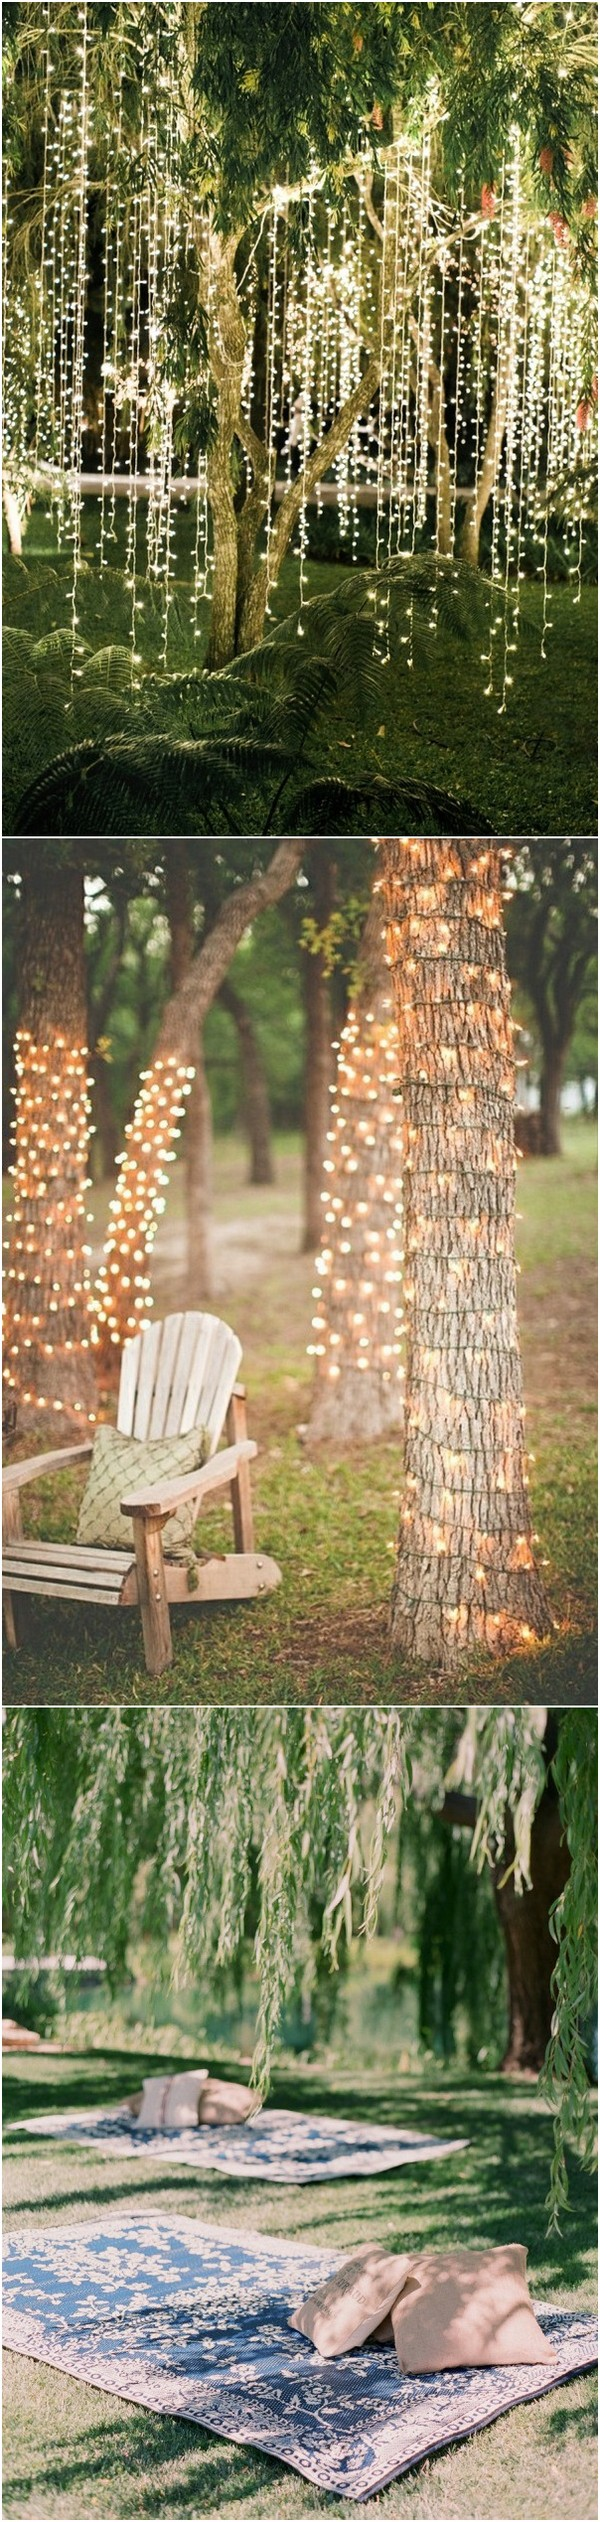 Garden wedding decoration ideas  amazing outdoor wedding decoration ideas  Wedding Ideas  Pinterest